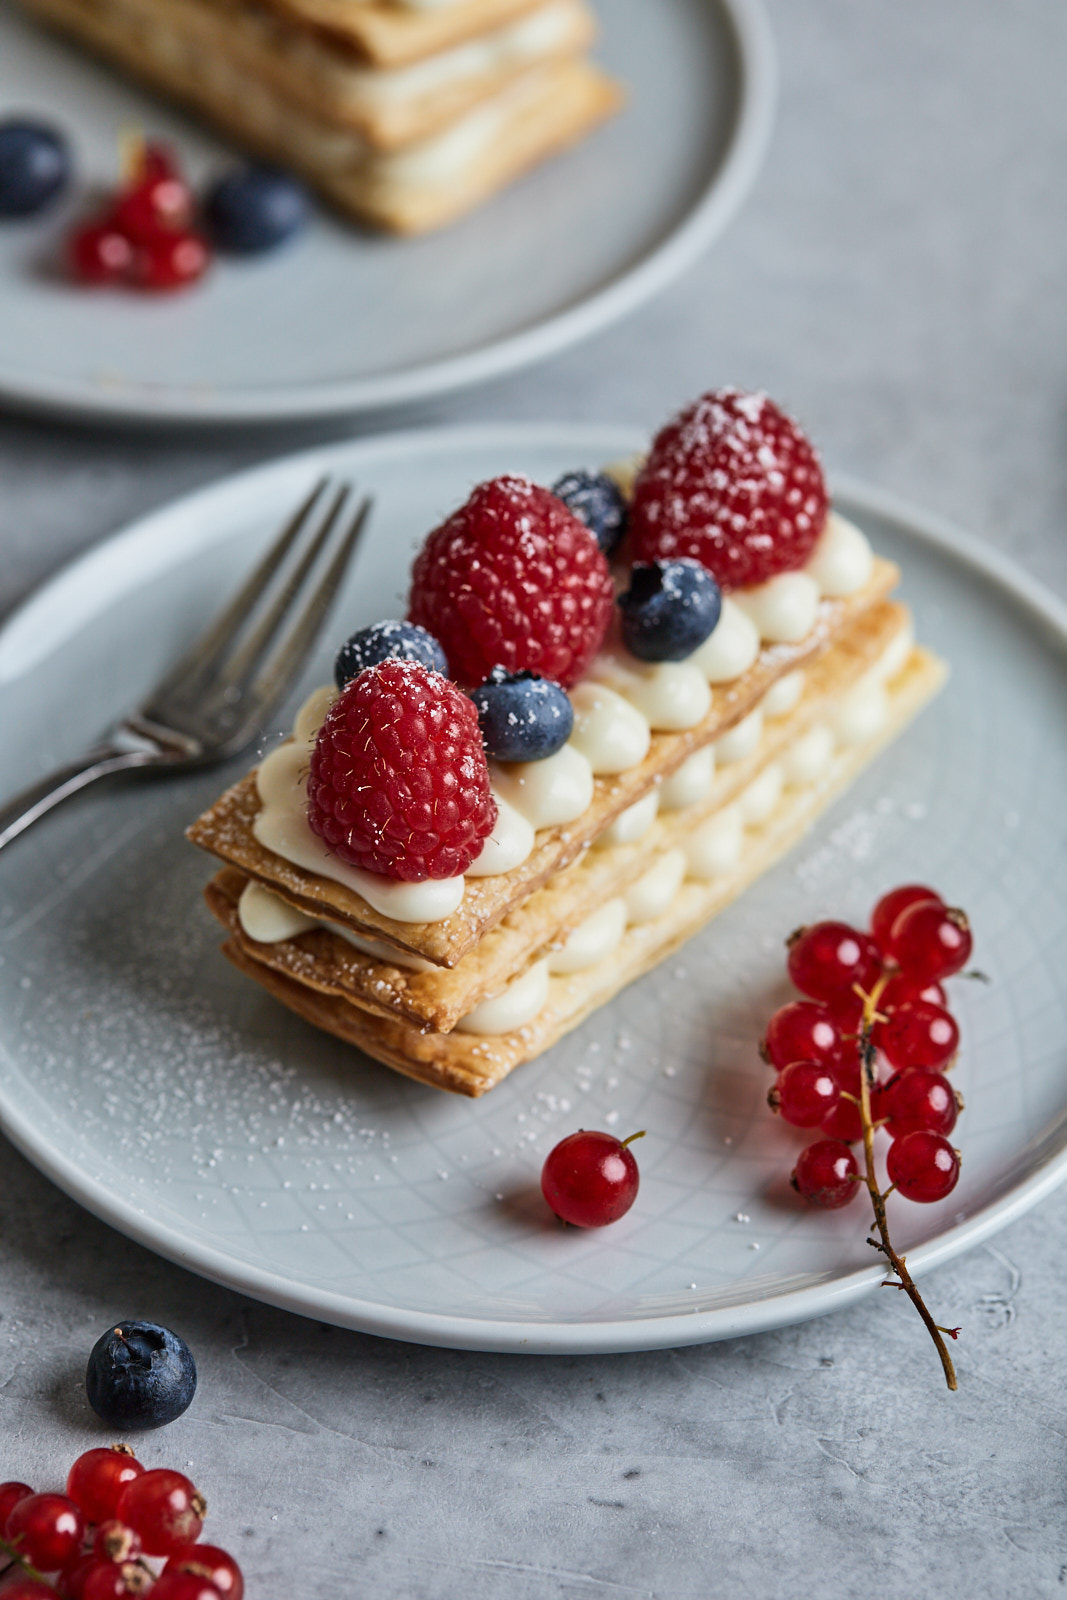 Berry and Creamy White Chocolate and Yogurt Mille Feuille